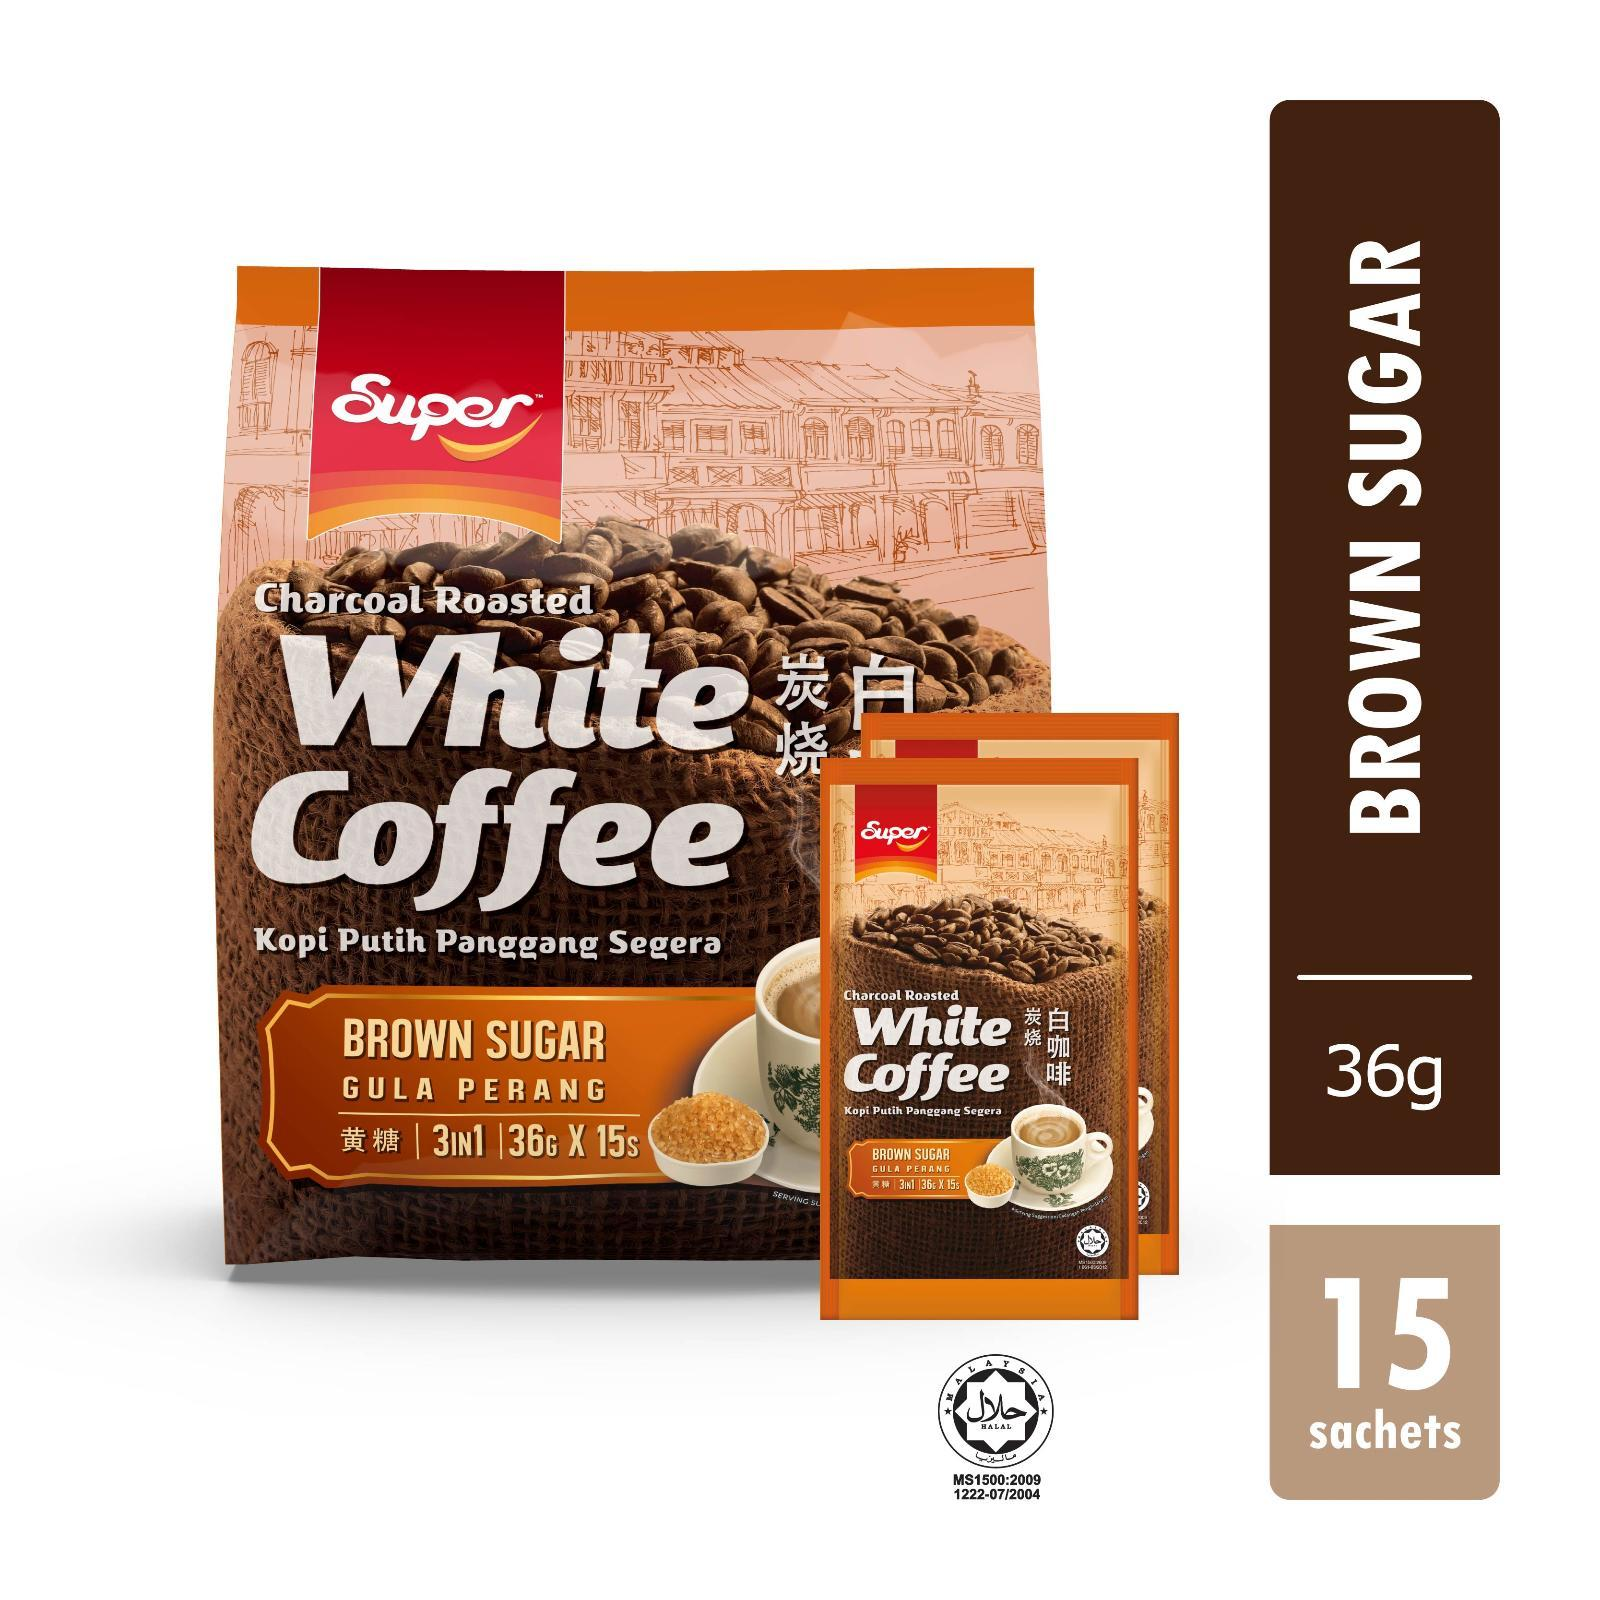 Super 3-in-1 Charcoal Roasted White Coffee with Brown Sugar